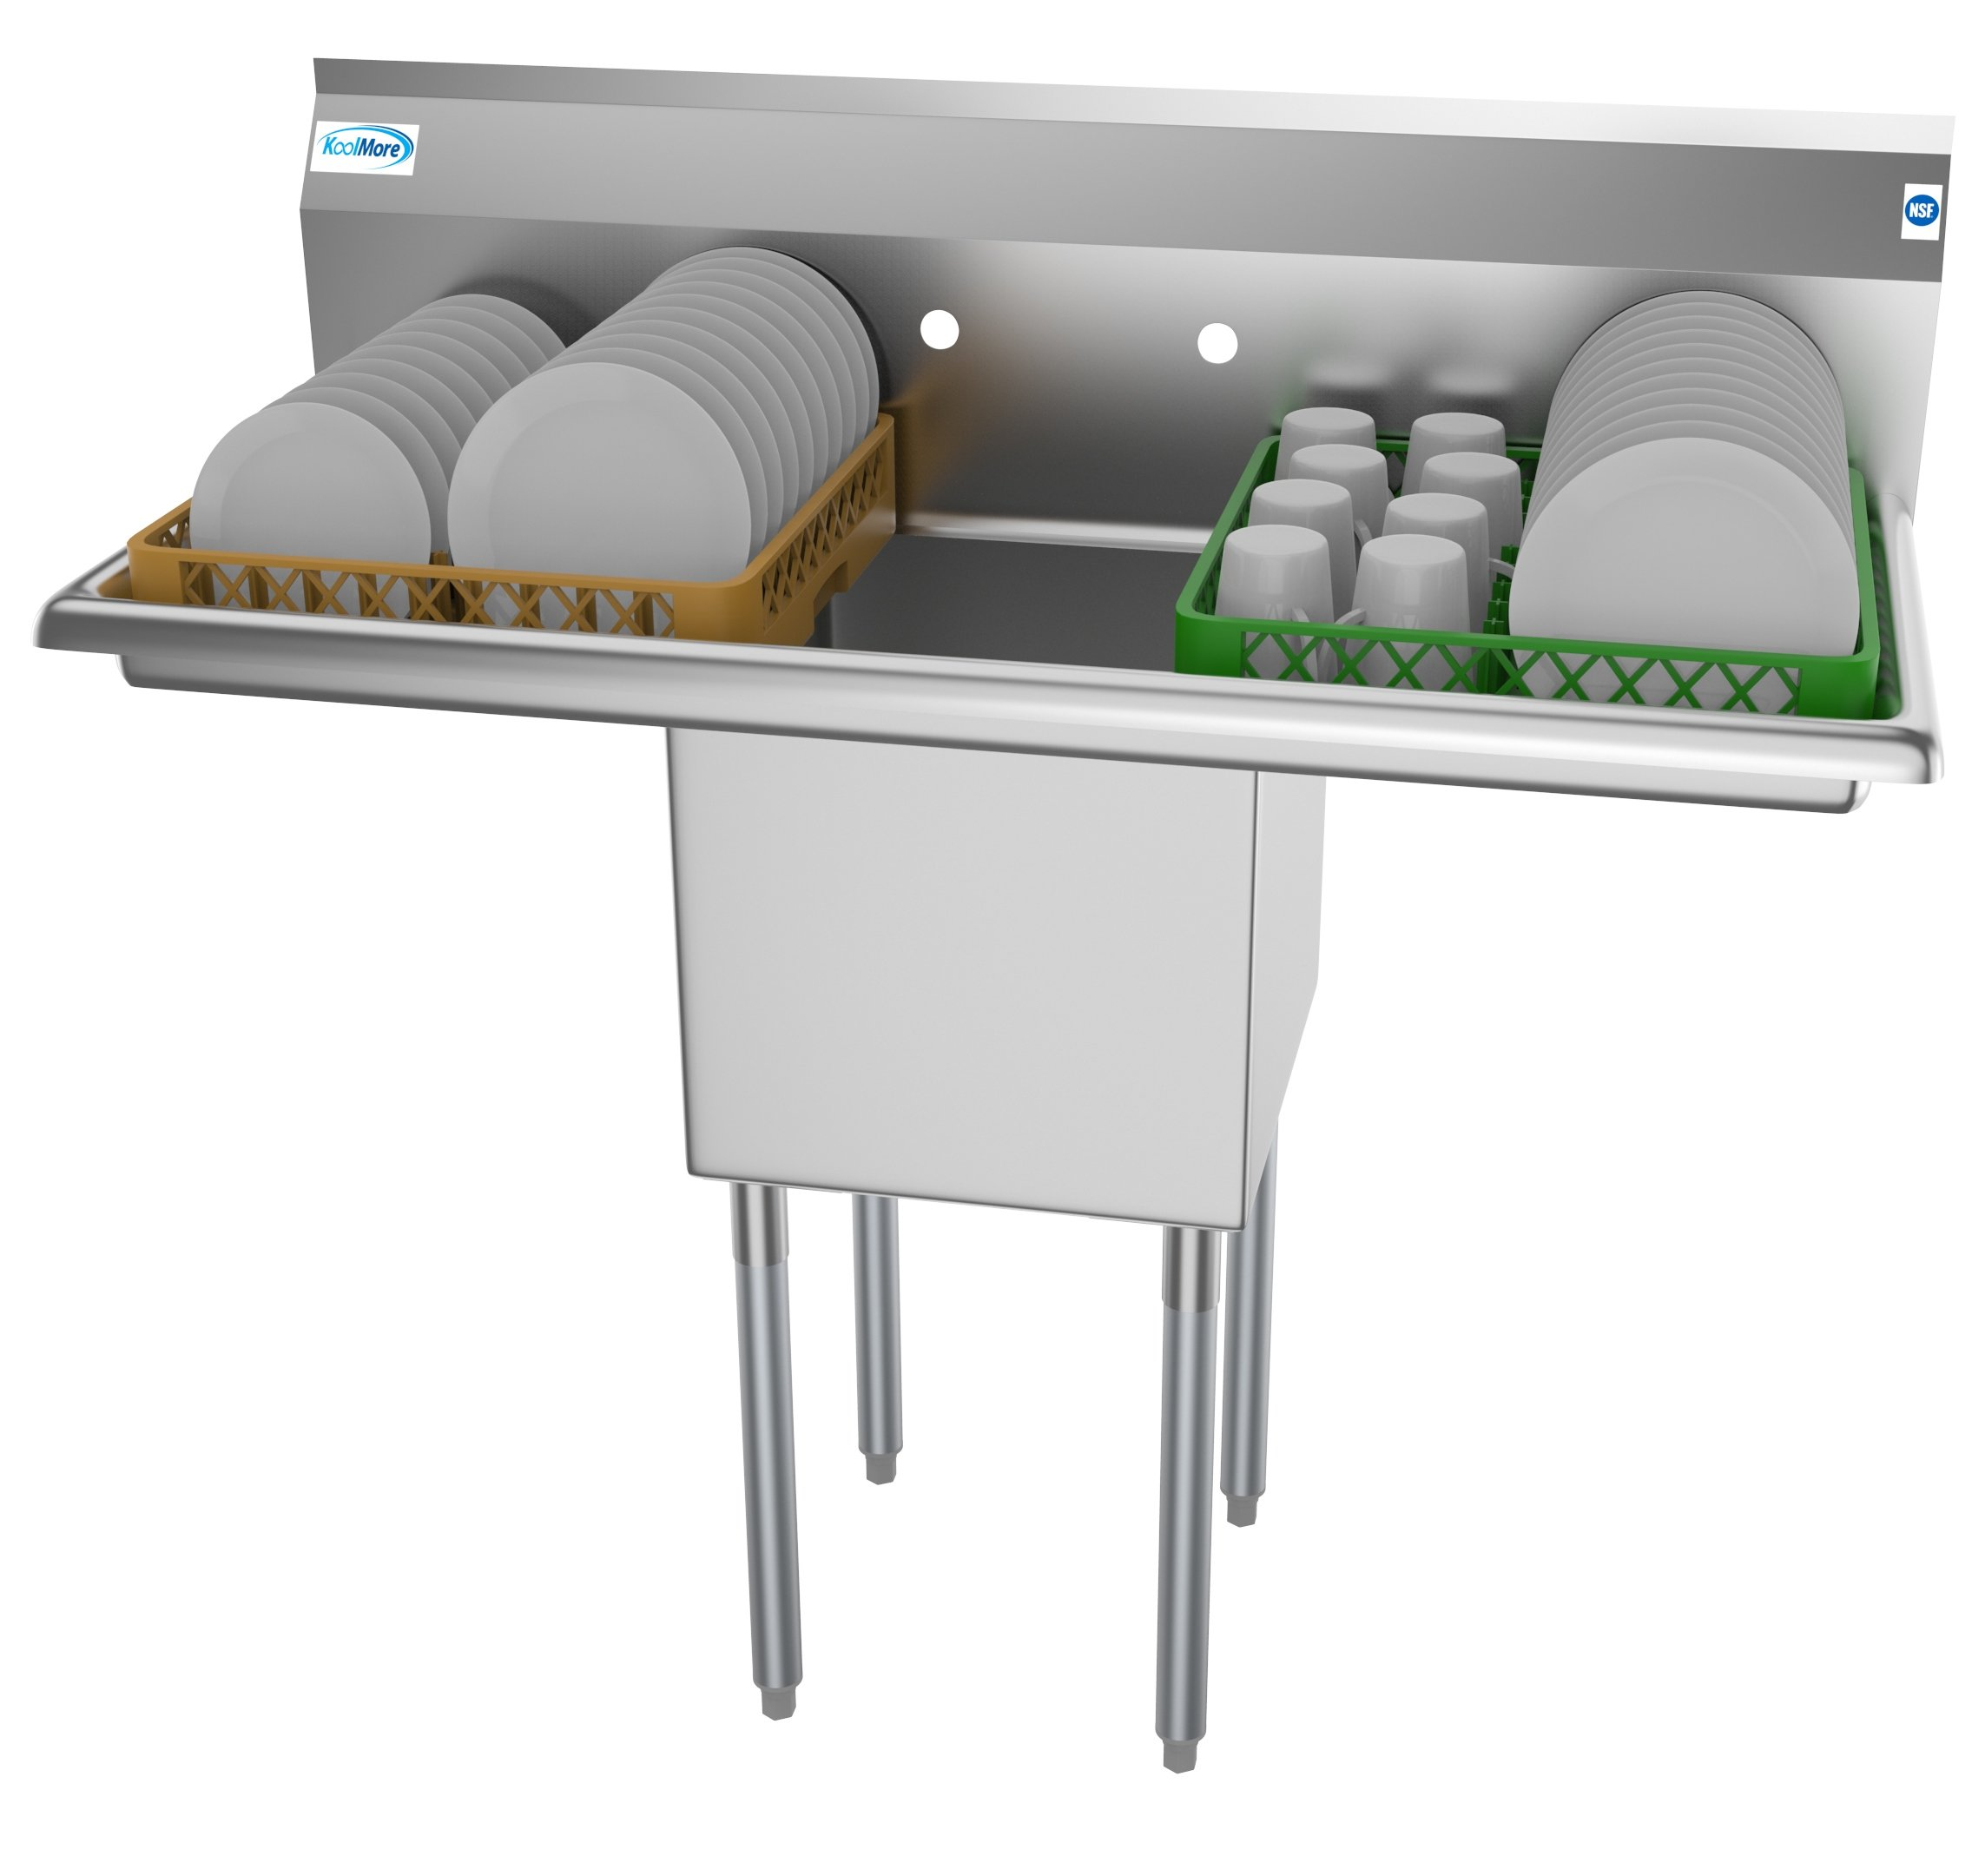 """1 Compartment 45"""" Stainless Steel Commercial Kitchen Prep & Utility Sink with 2 Drainboards - Bowl Size 15"""" x 15"""" x 12"""""""